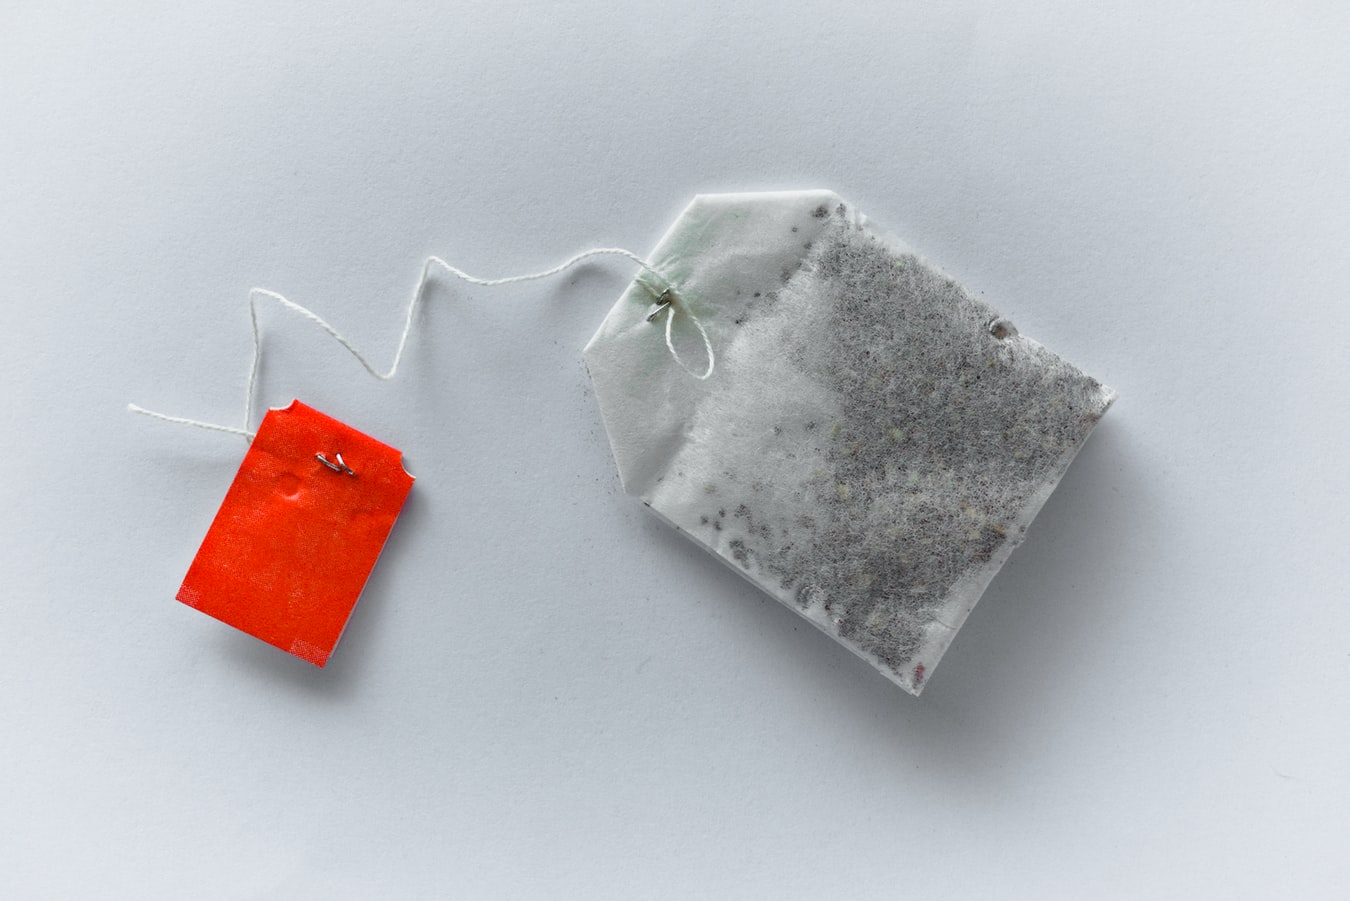 some tea bags contain hidden plastic